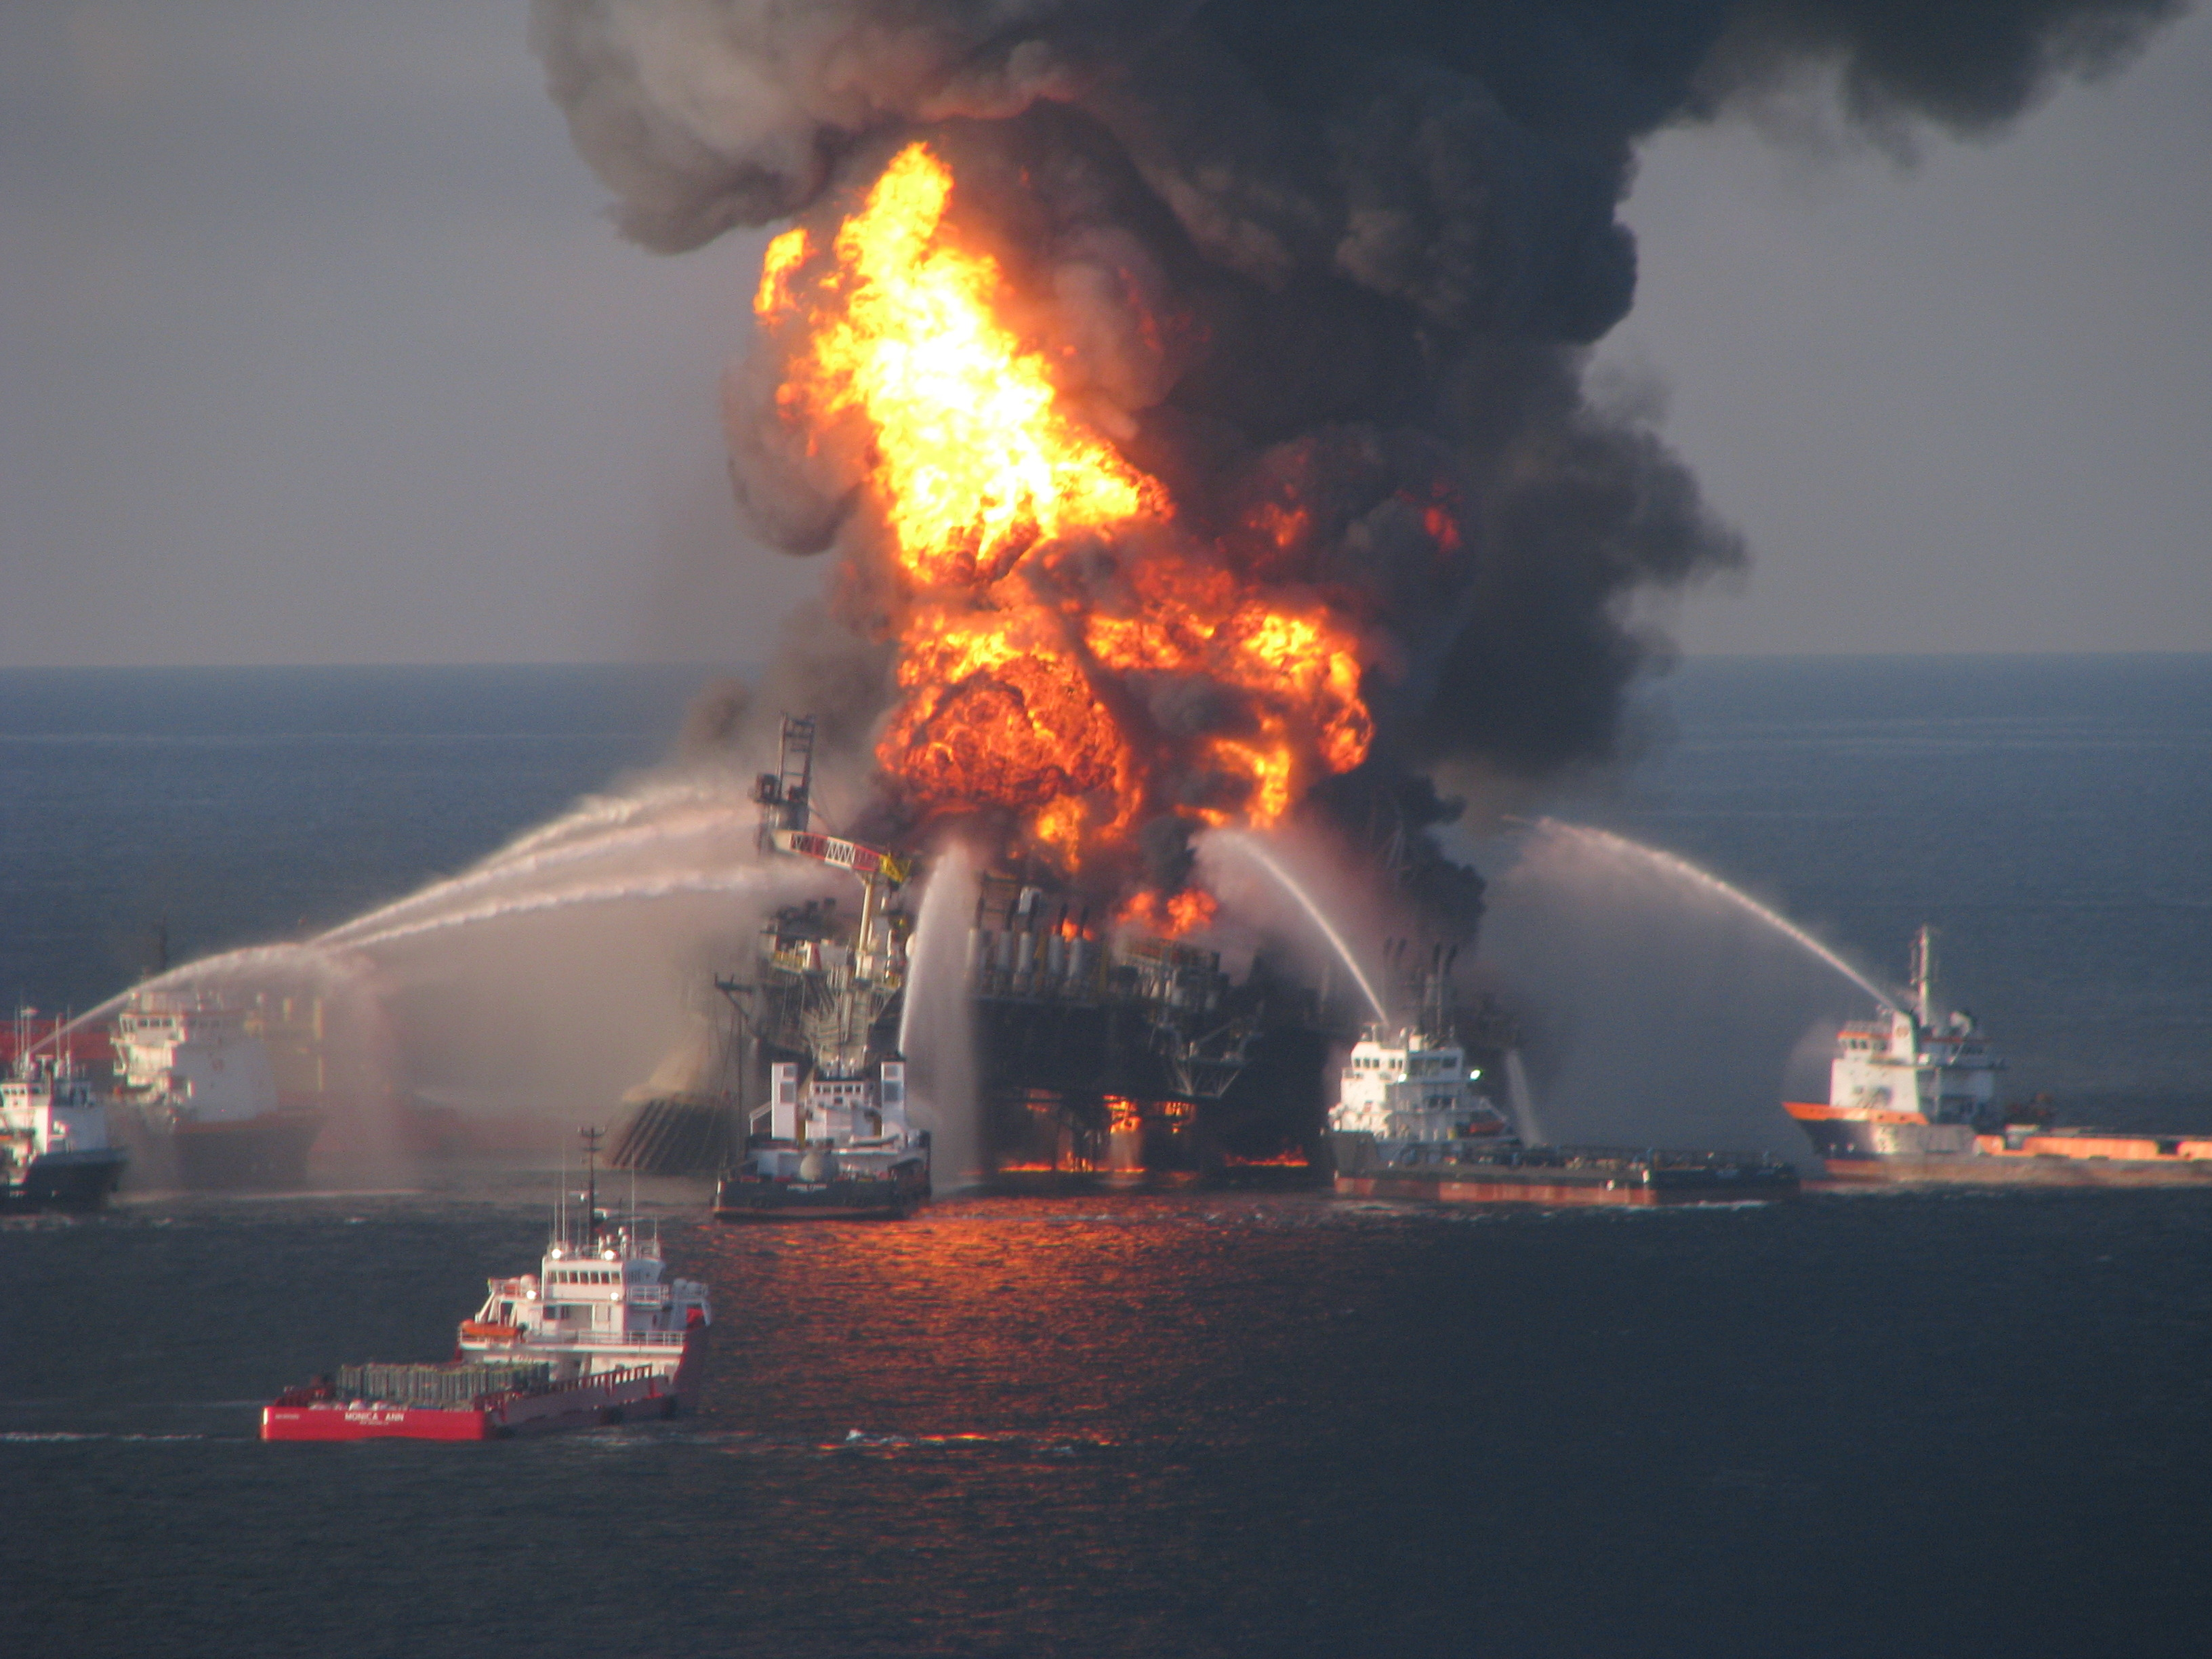 NOAA_rig_on_fire.jpg